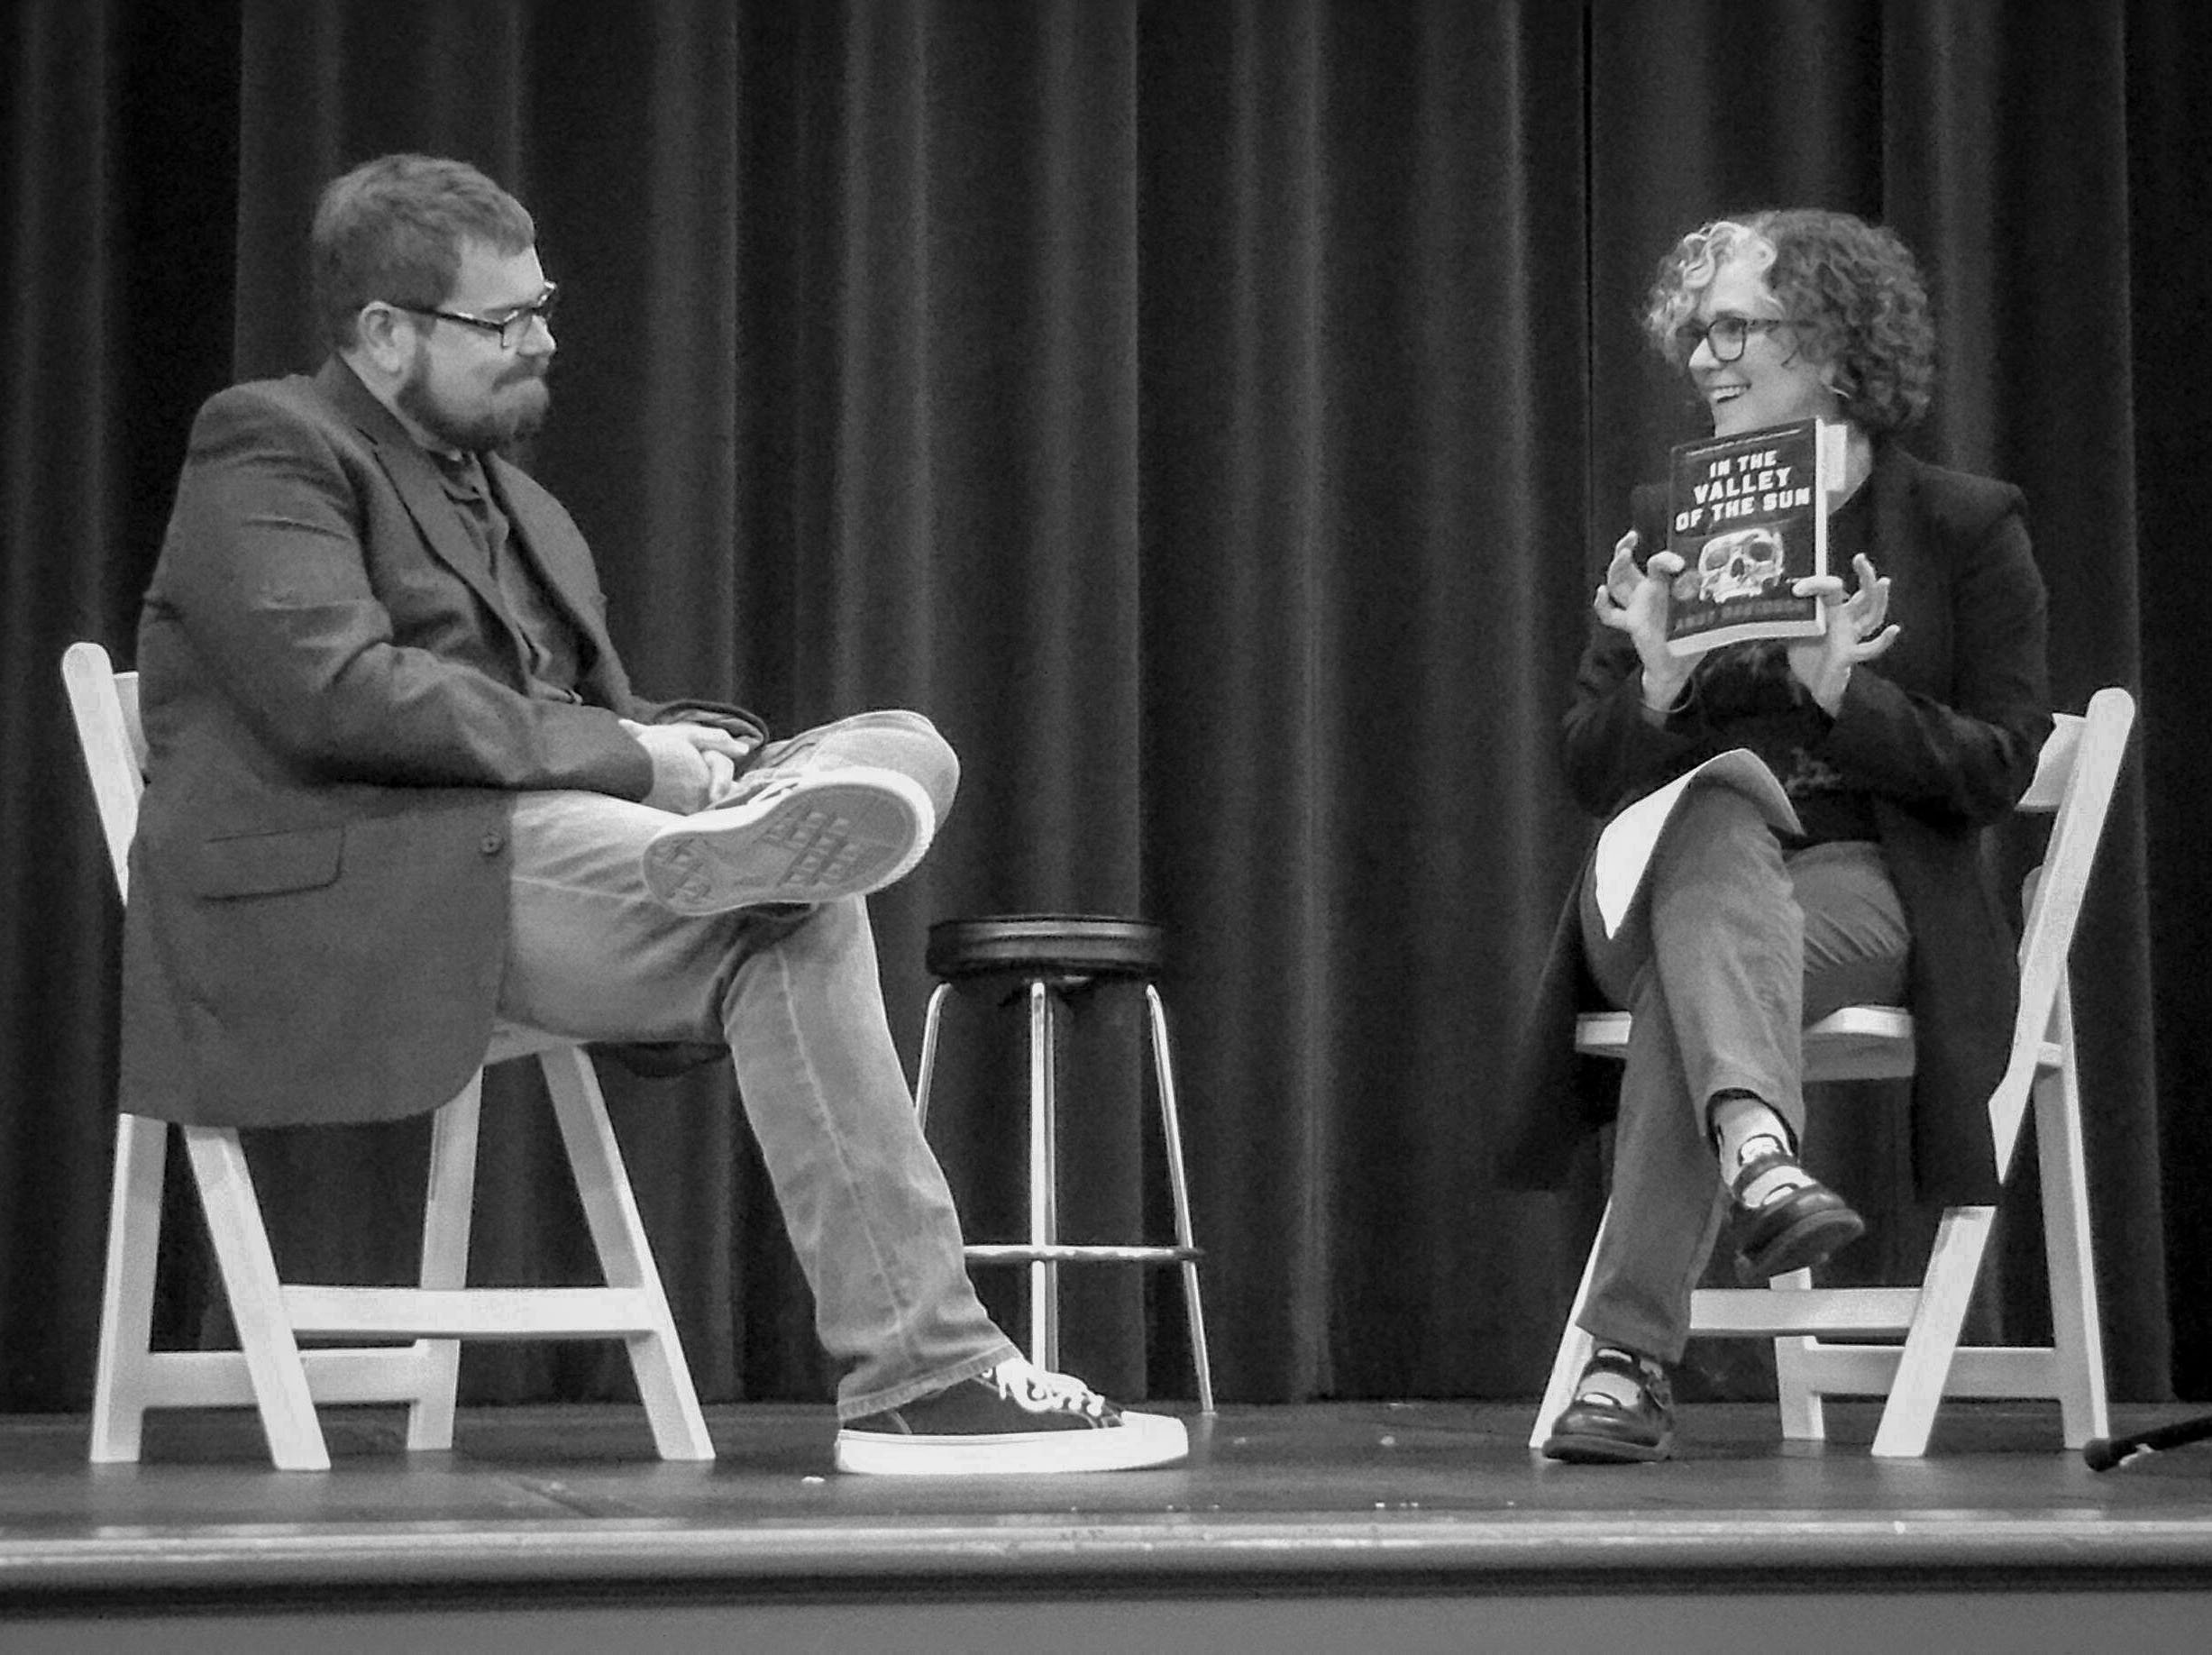 Husband and wife on stage together: Crystal interviews me about my novel for MGA's annual arts festival.